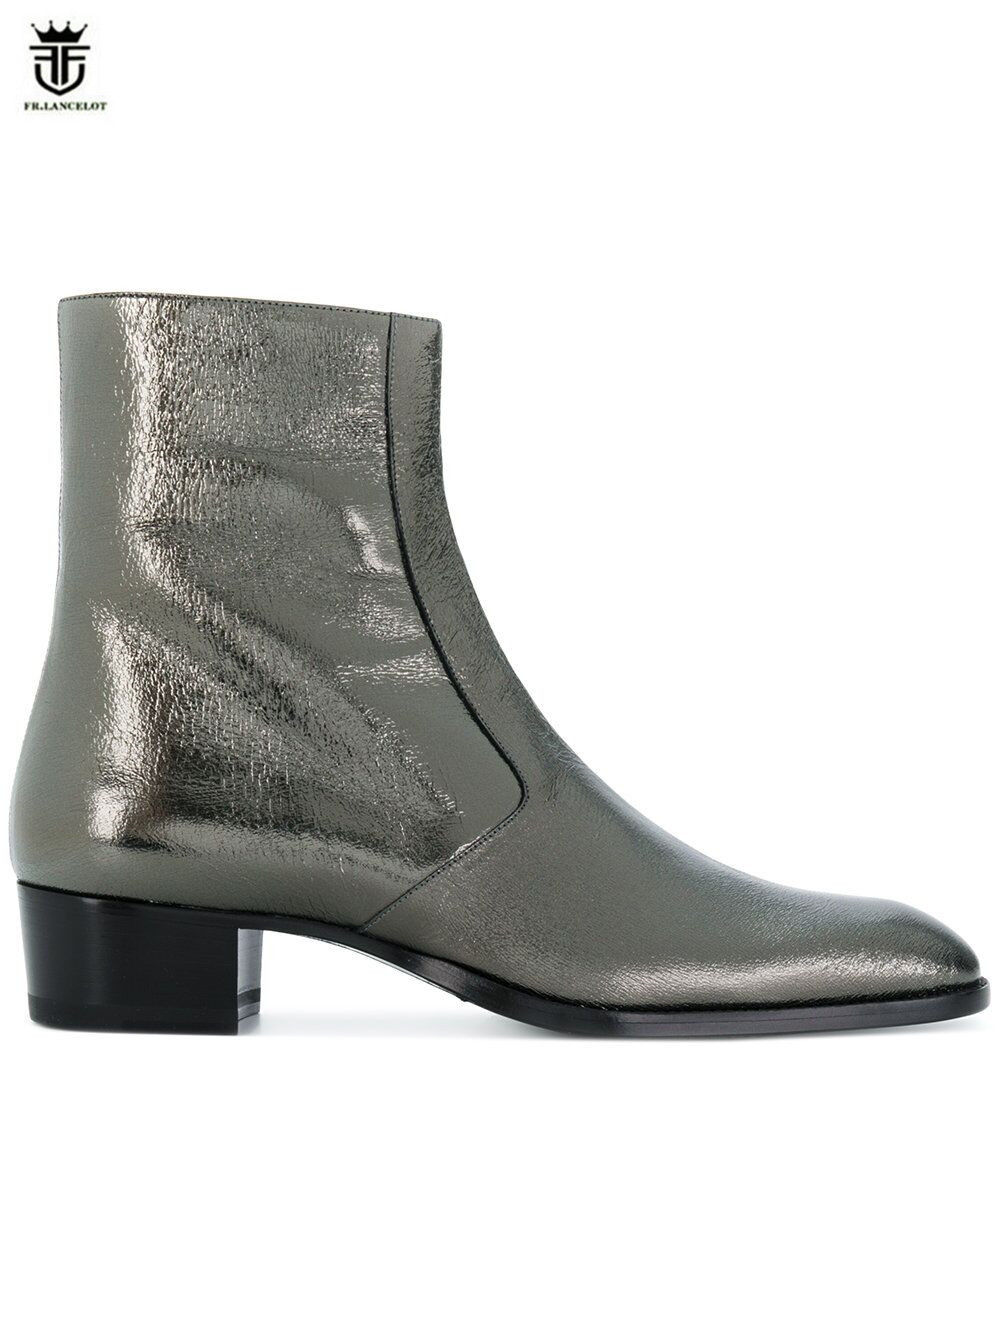 FR.LANCELOT 2020 sequin Boots real leather boot Vintage British Style Men Short Boots zip on glitter men's boots med heel